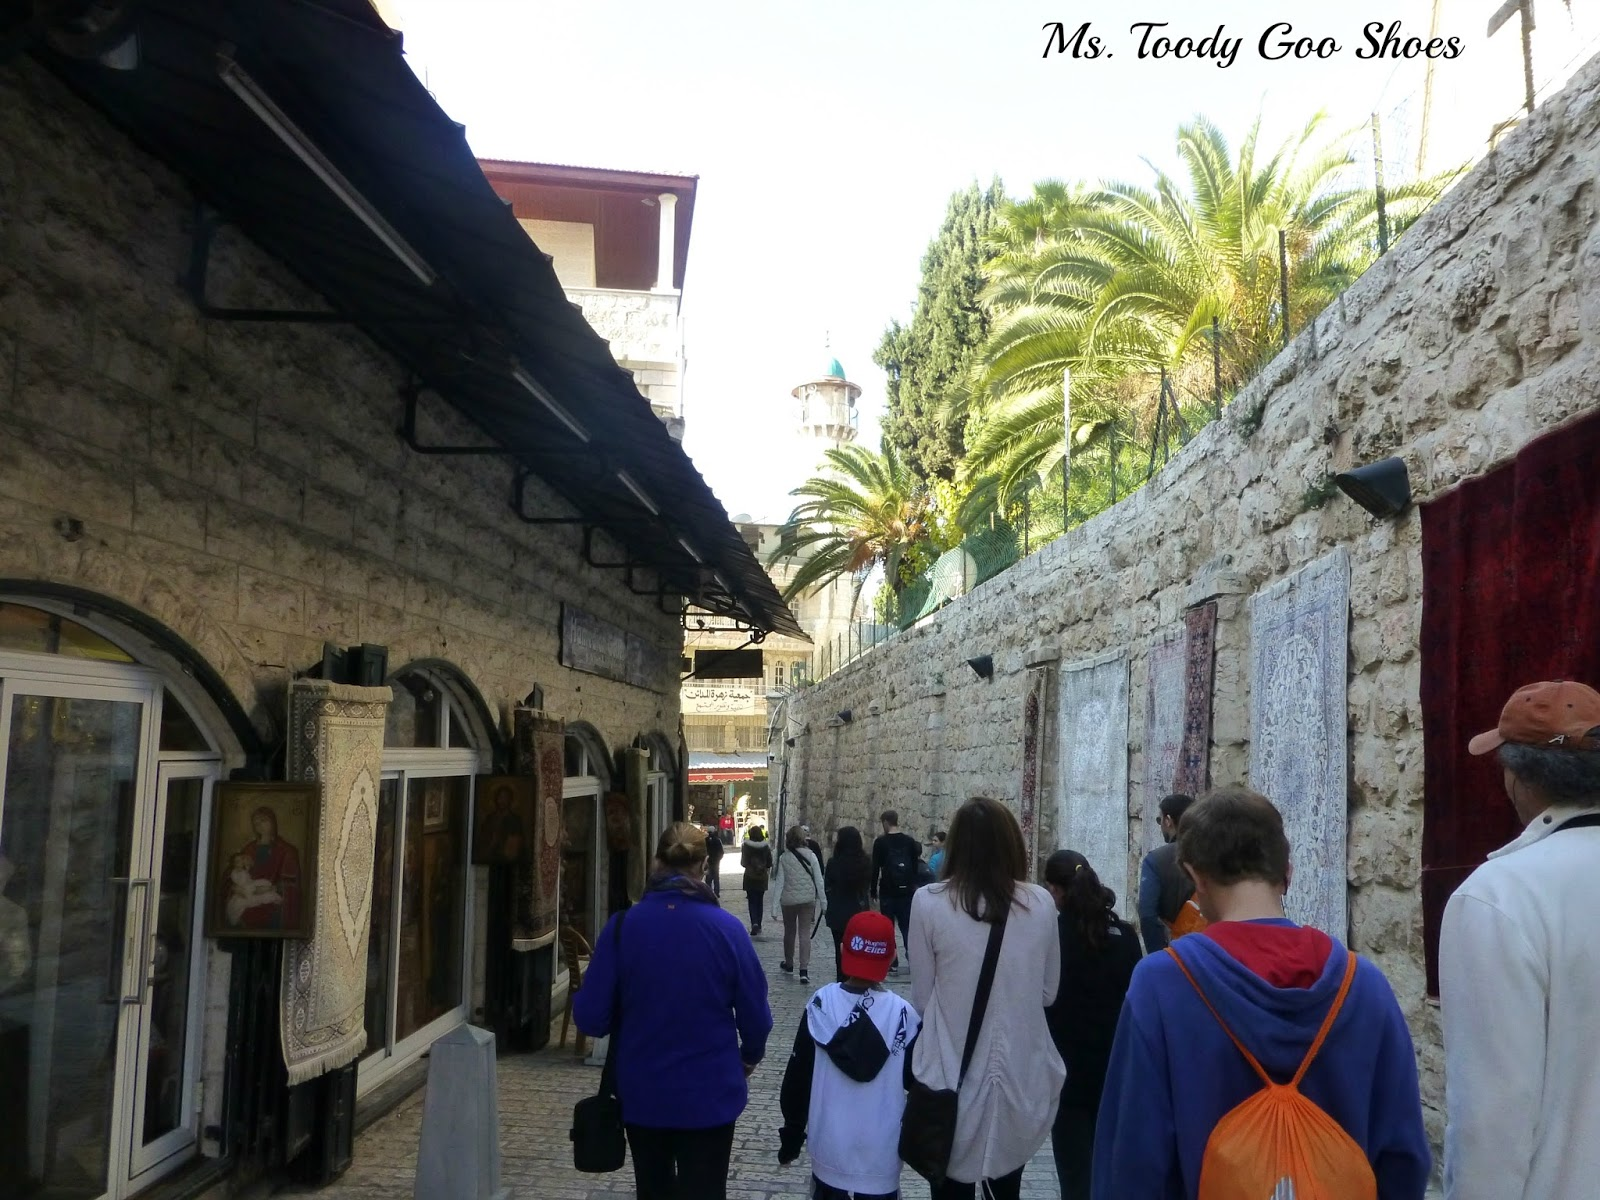 Church of the Flagellation,  Jerusalem --- Ms. Toody Goo Shoes